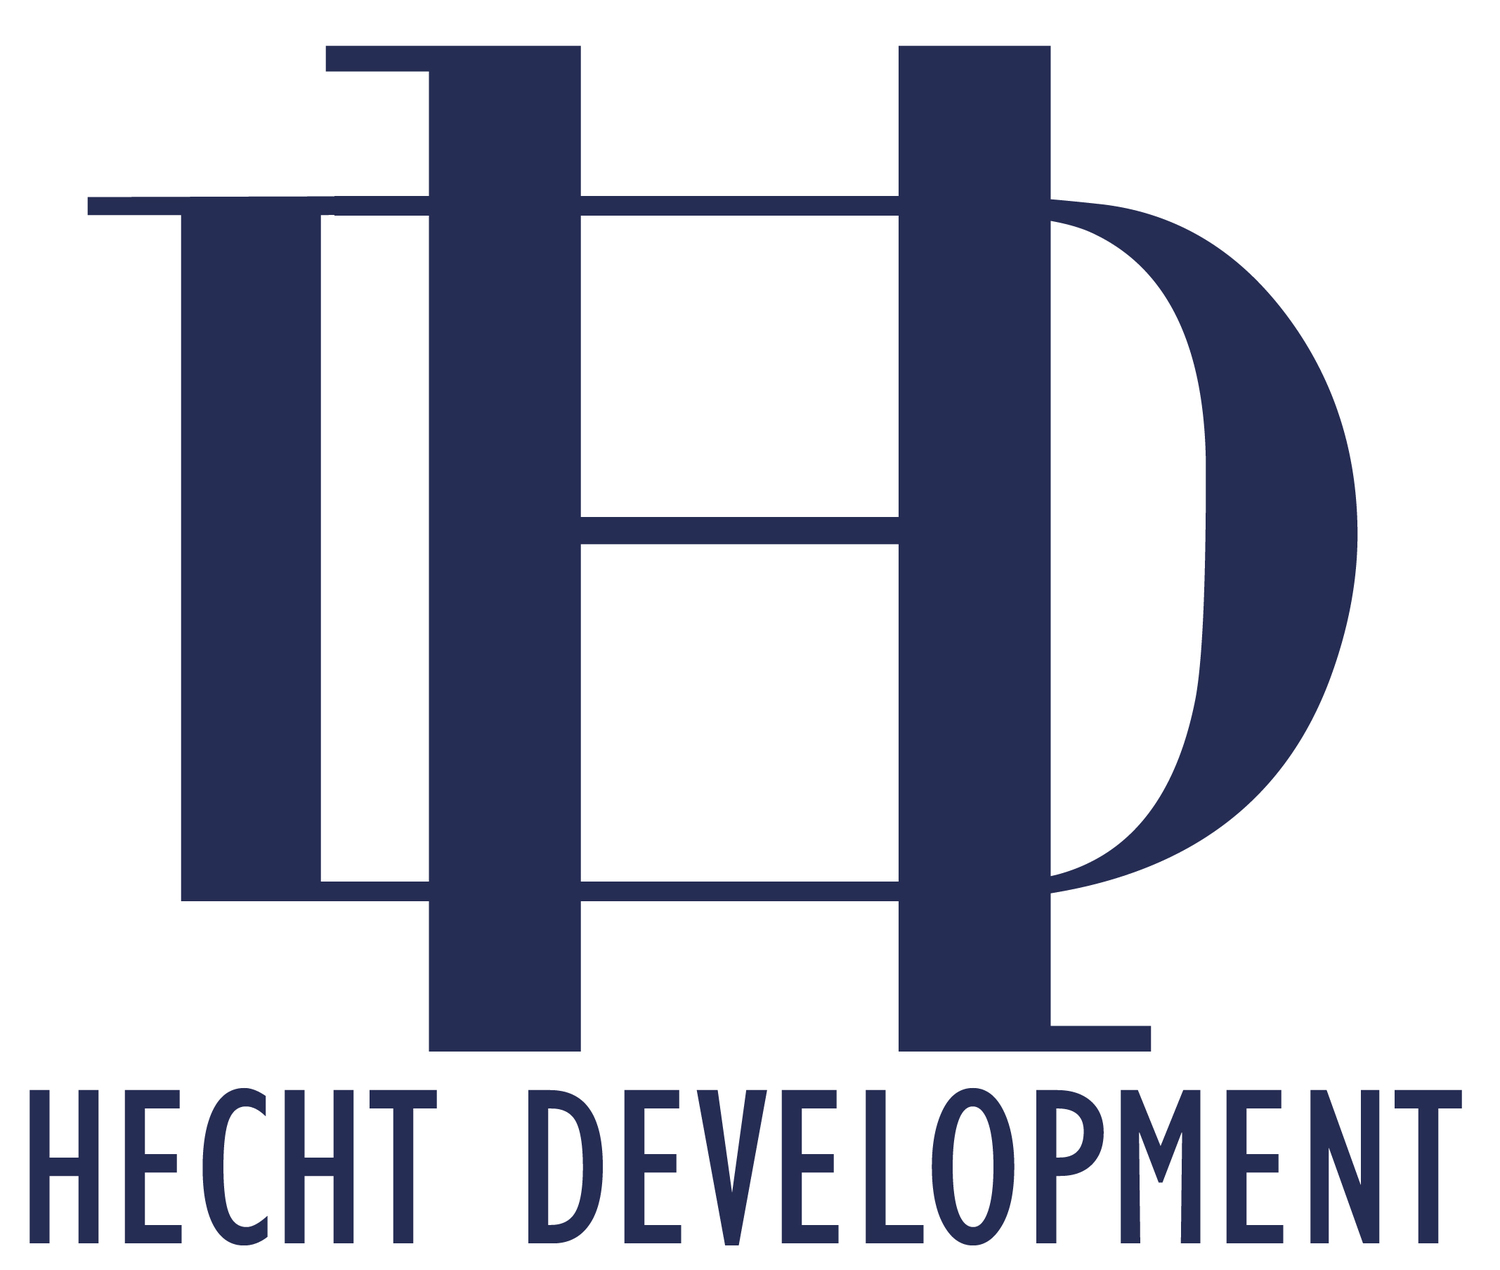 Hecht Development